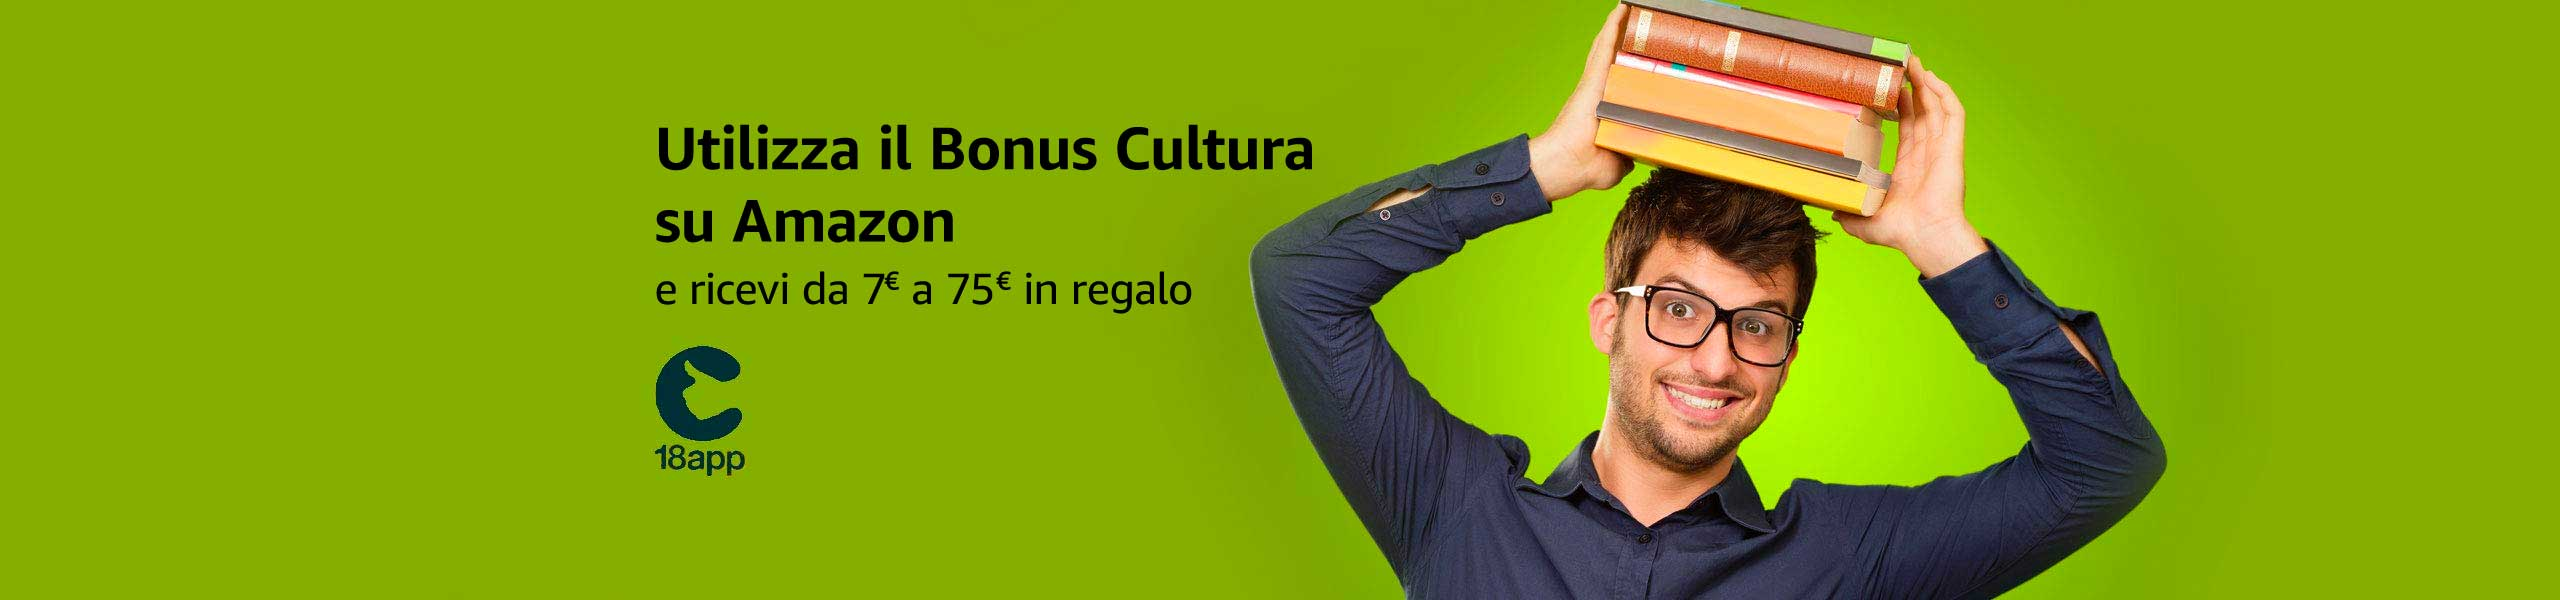 Utilizza il tuo bonus su Amazon.it